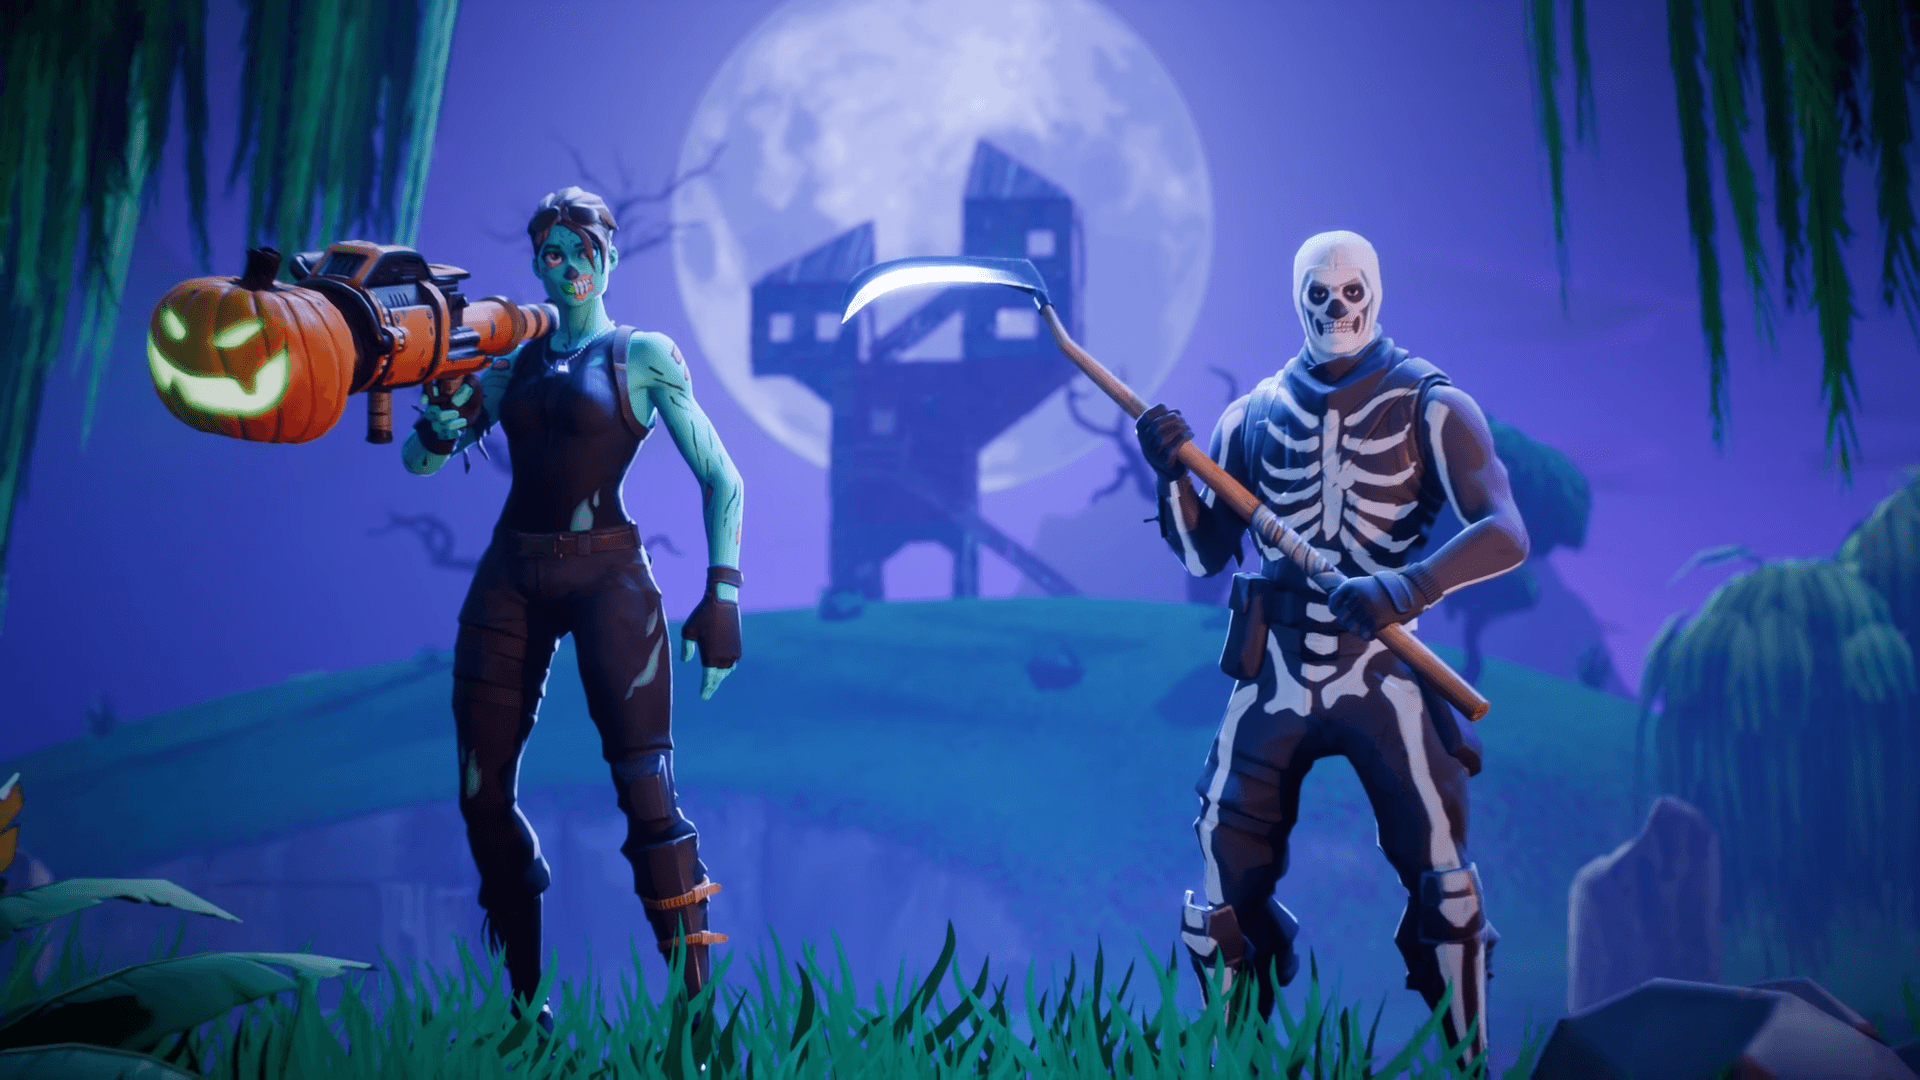 1920x1080 58 Fortnite HD Wallpapers